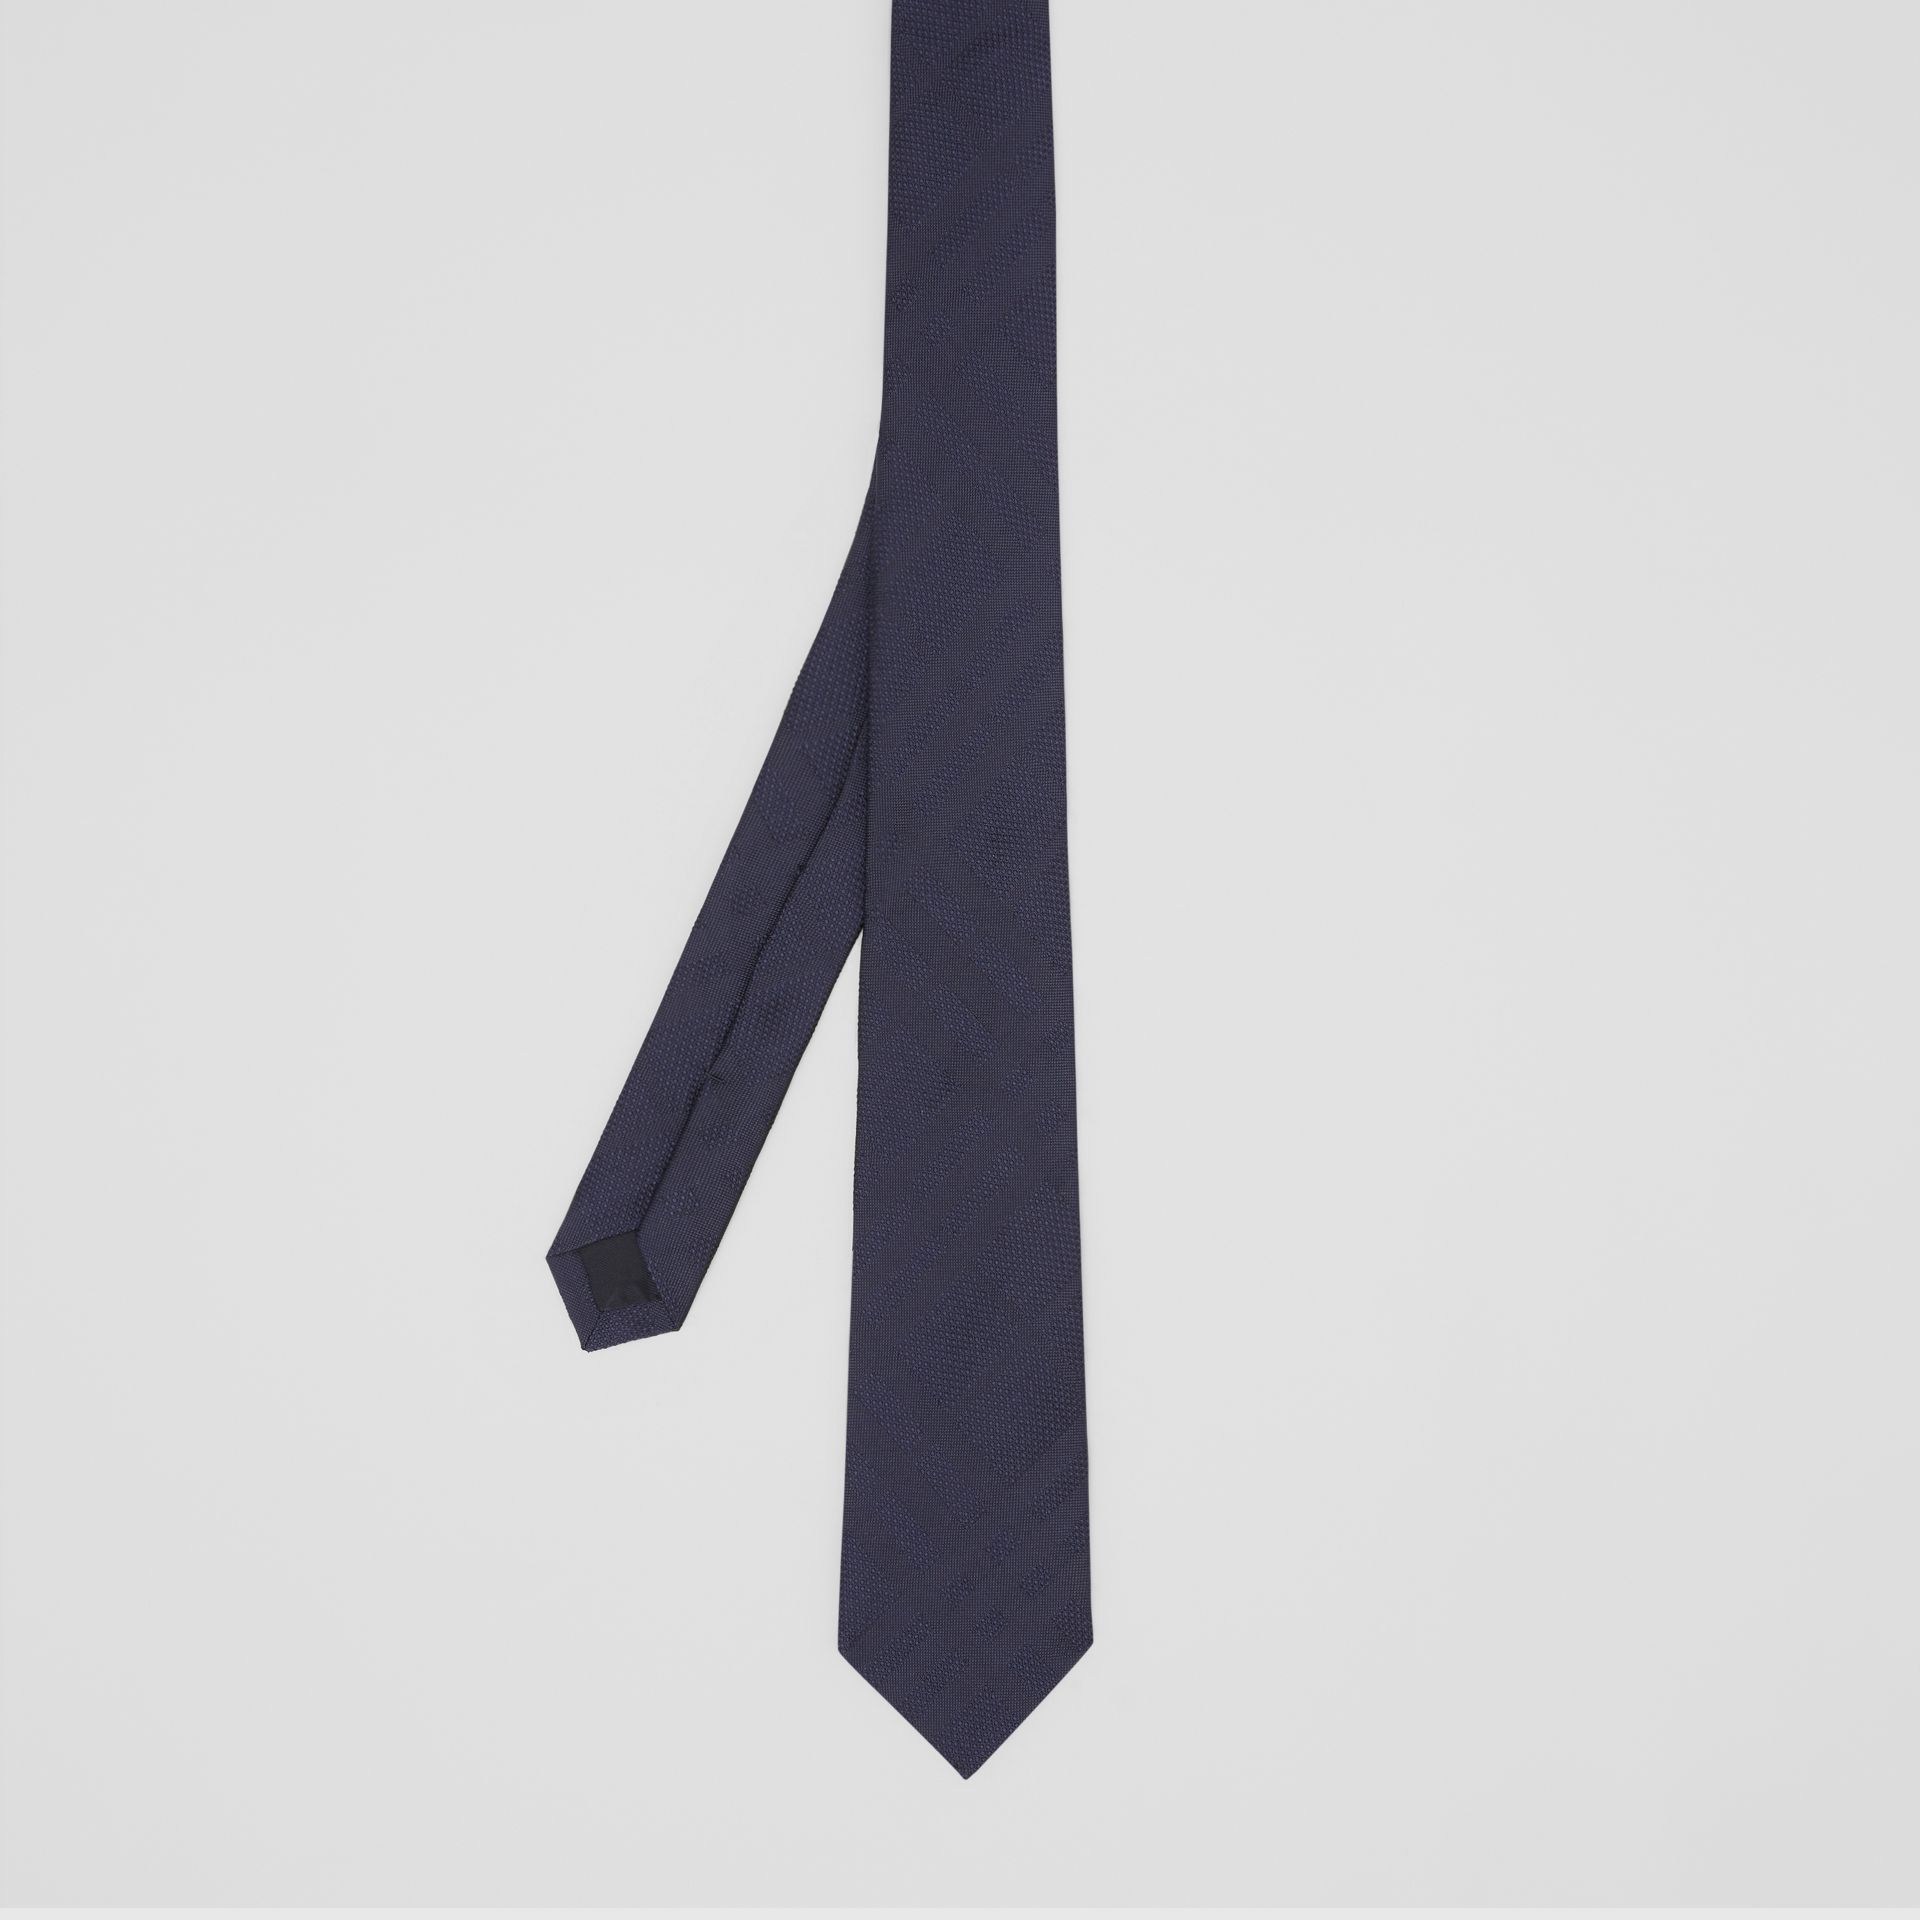 Classic Cut Check Silk Jacquard Tie in Navy - Men | Burberry - gallery image 4